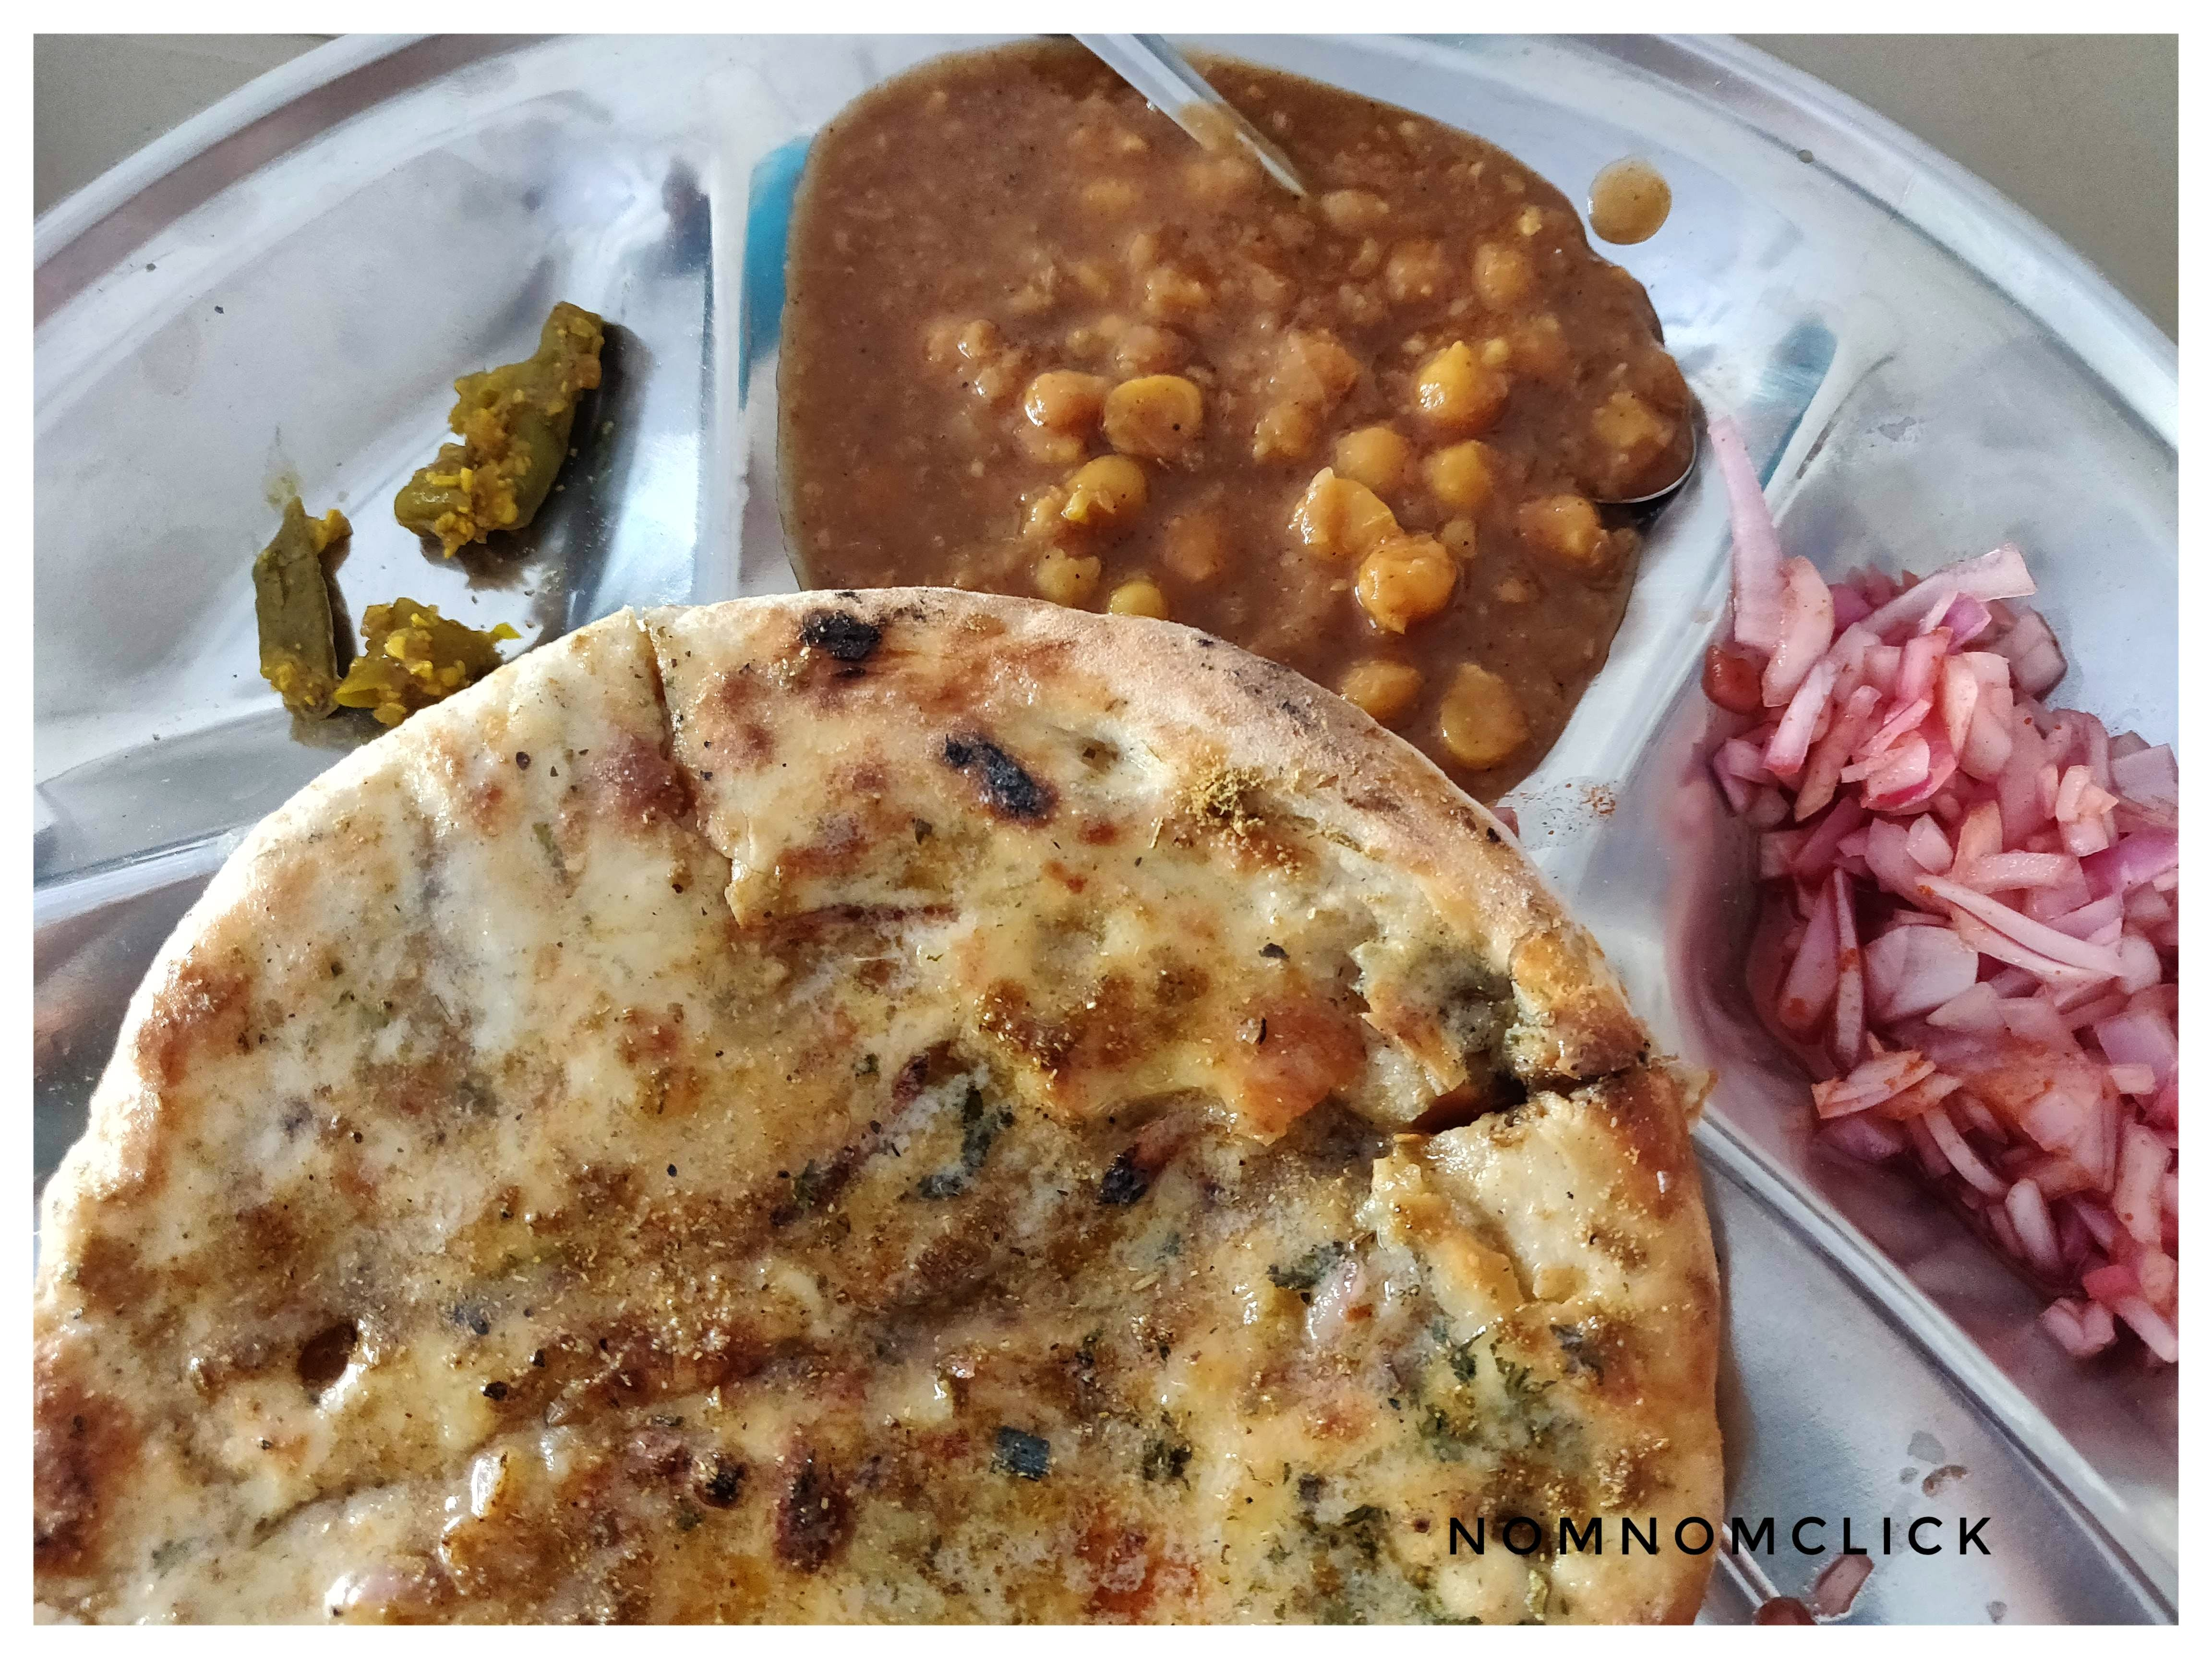 Food,Cuisine,Dish,Ingredient,Naan,Kulcha,Roti,Paratha,Staple food,Chapati